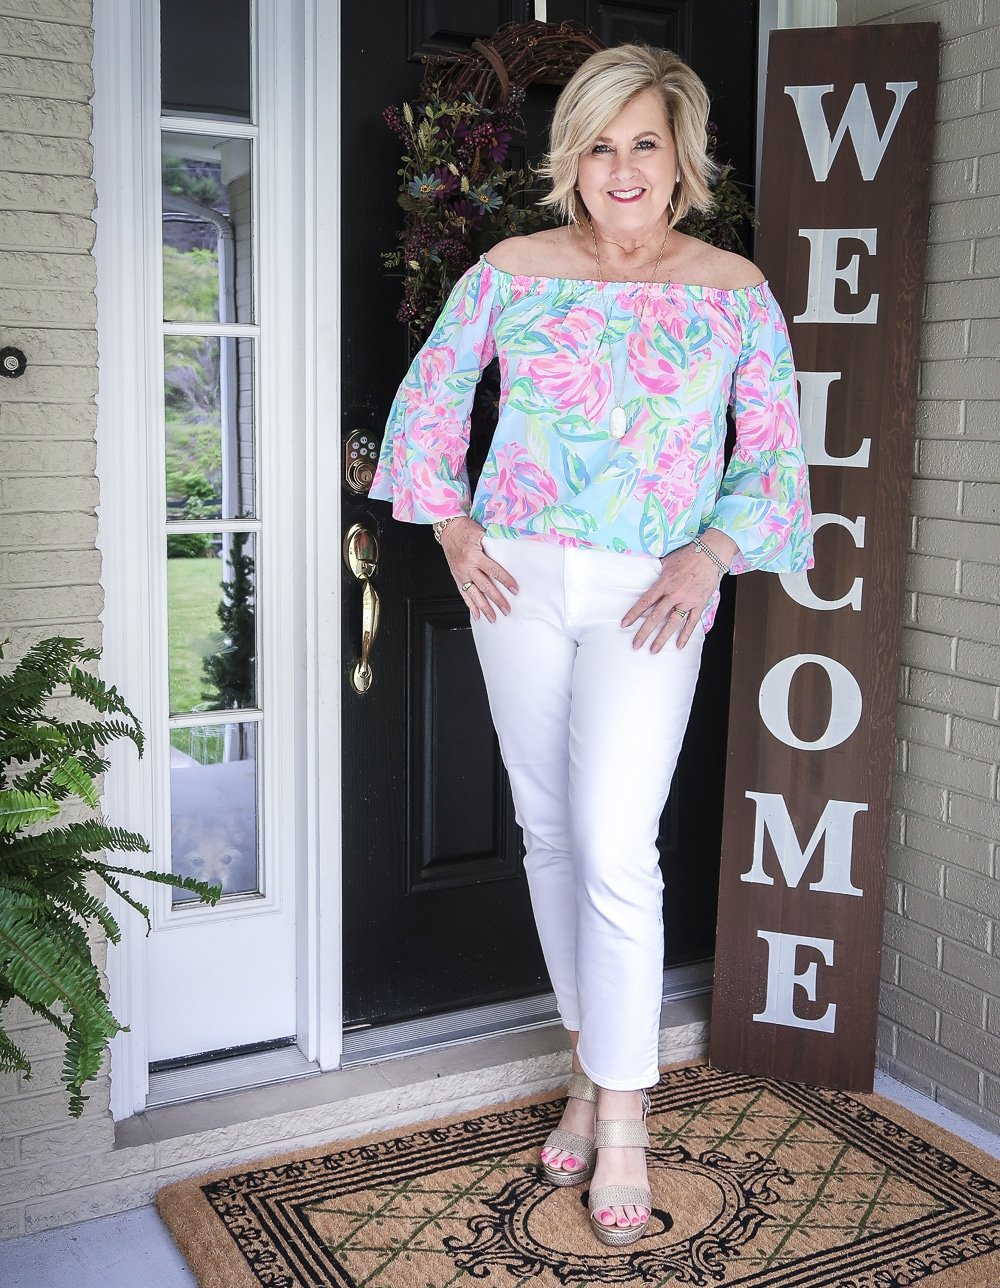 Fashion Blogger 50 Is Not Old wearing a colorful off the shoulder top from Lilly Pulitzer and white crop jeans with gold wedges